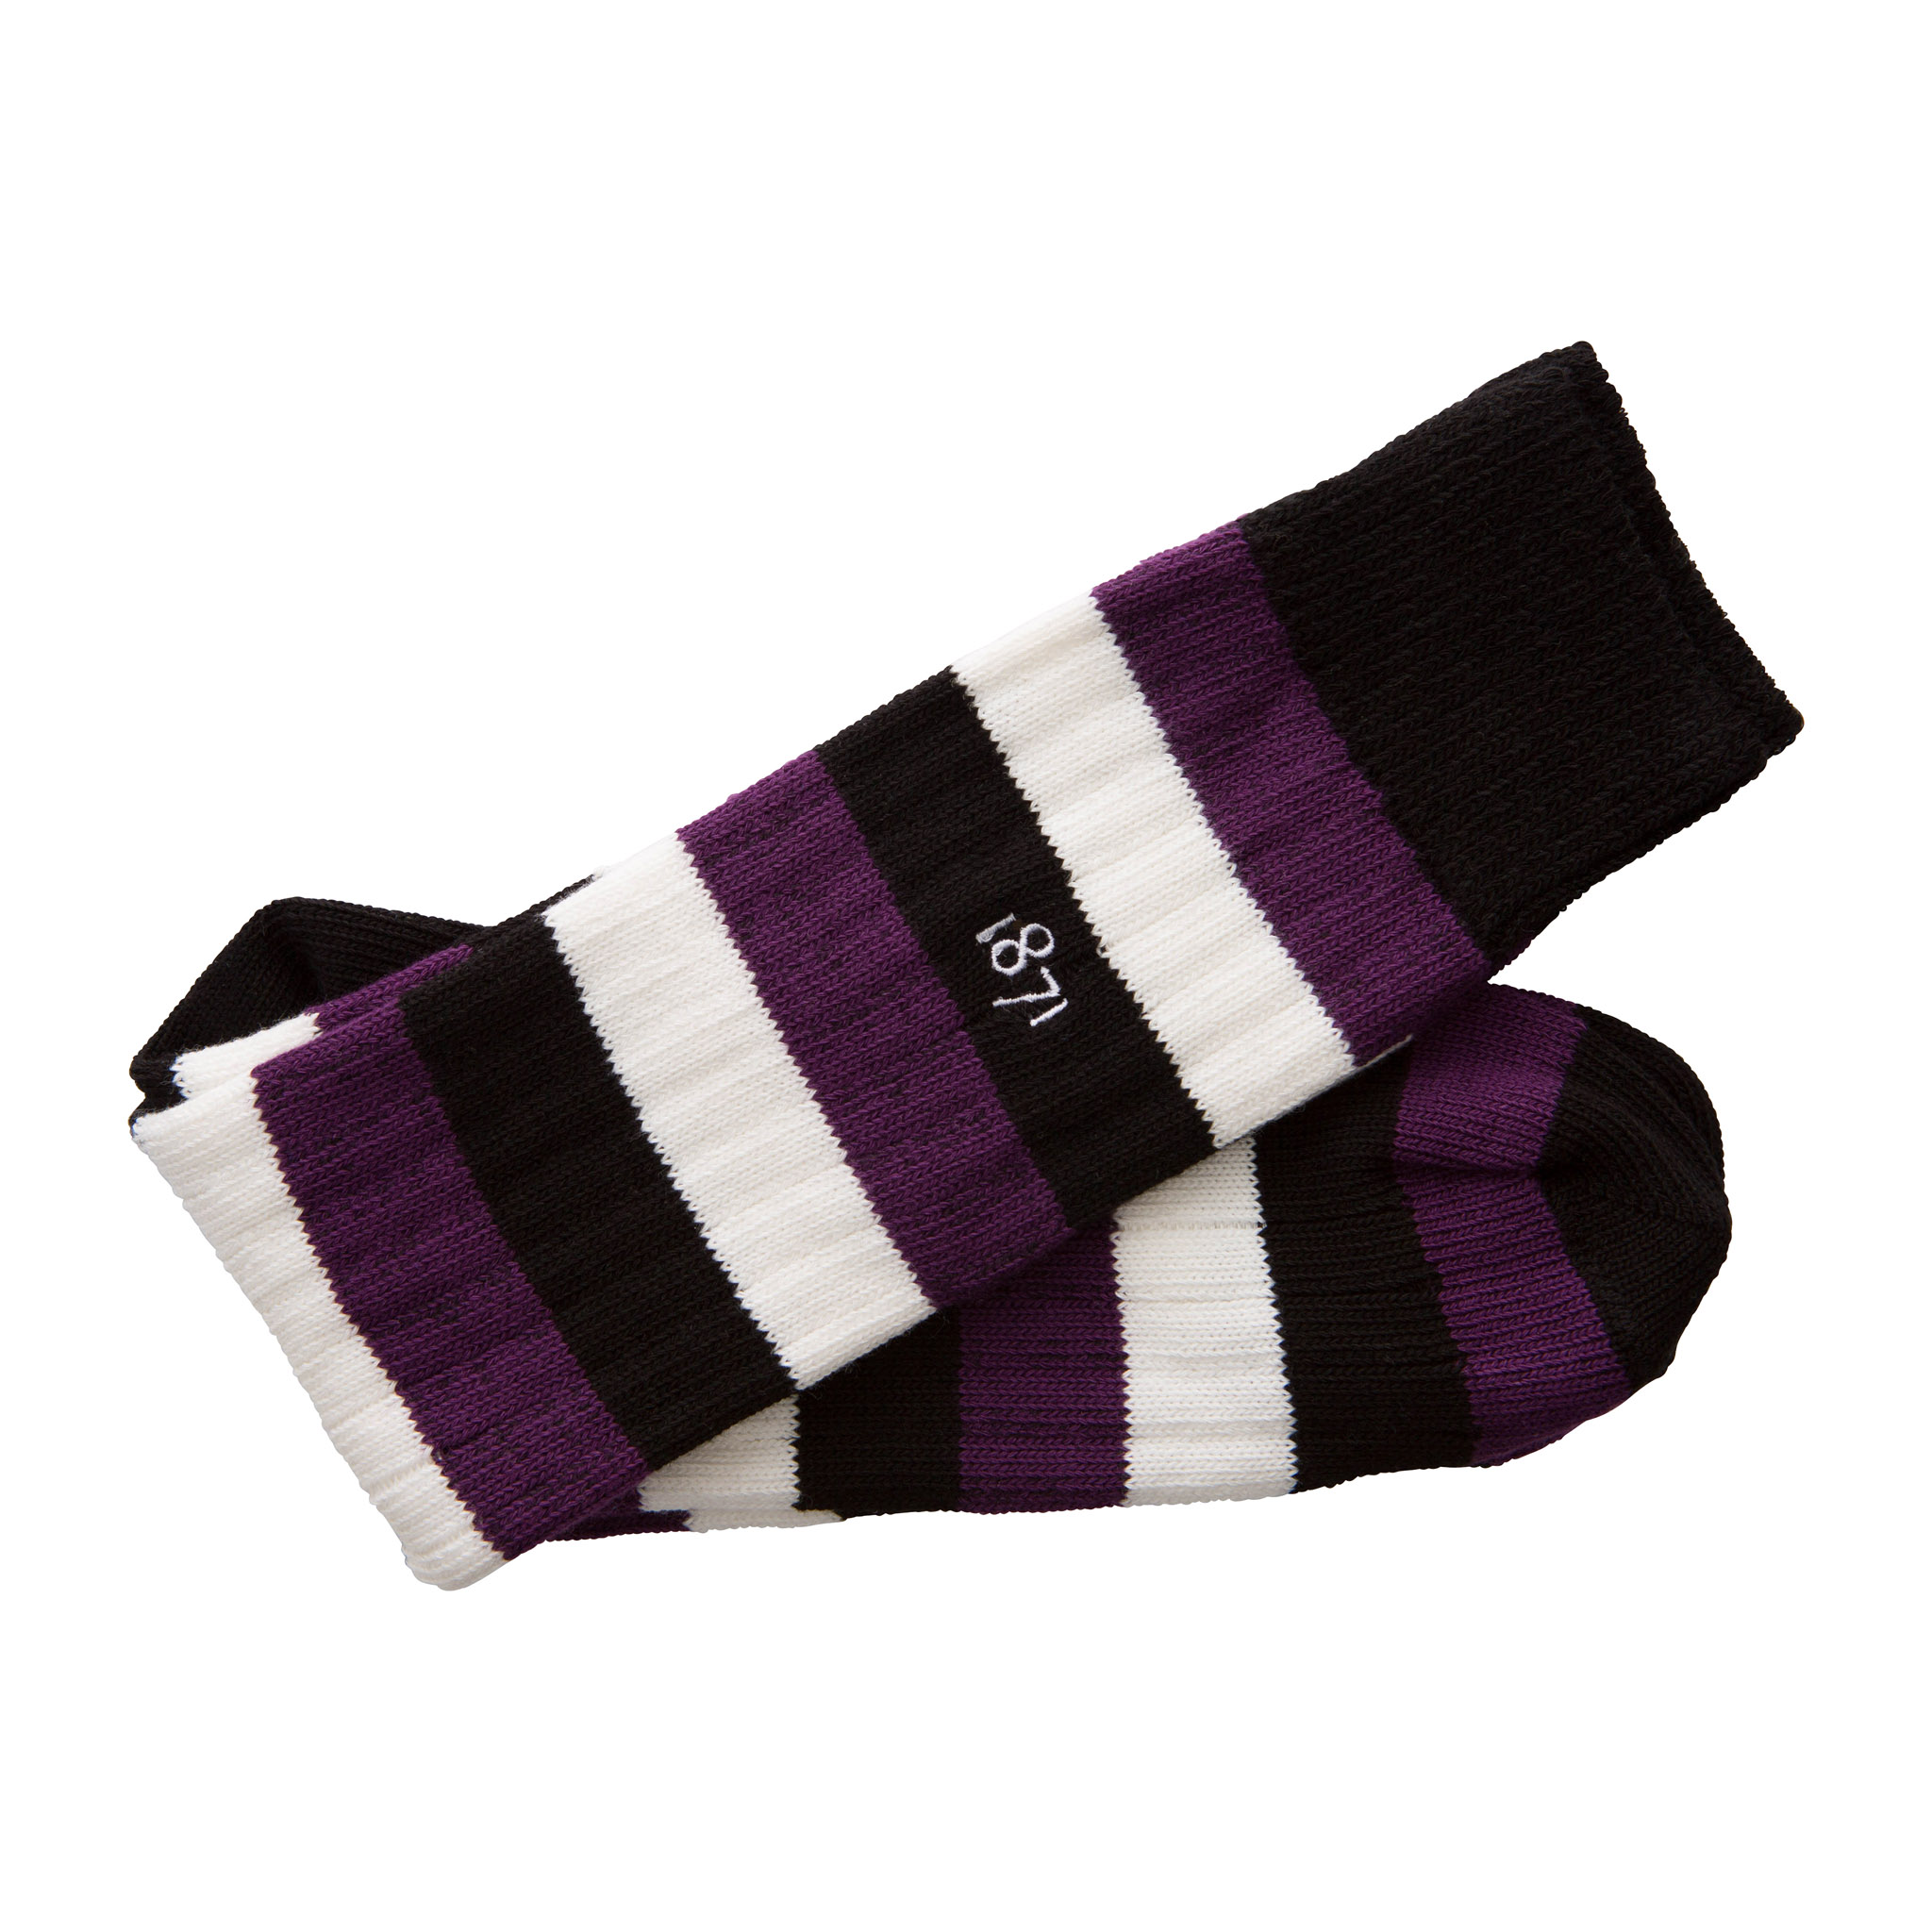 Cotton black, purple and white stripe sock - folded